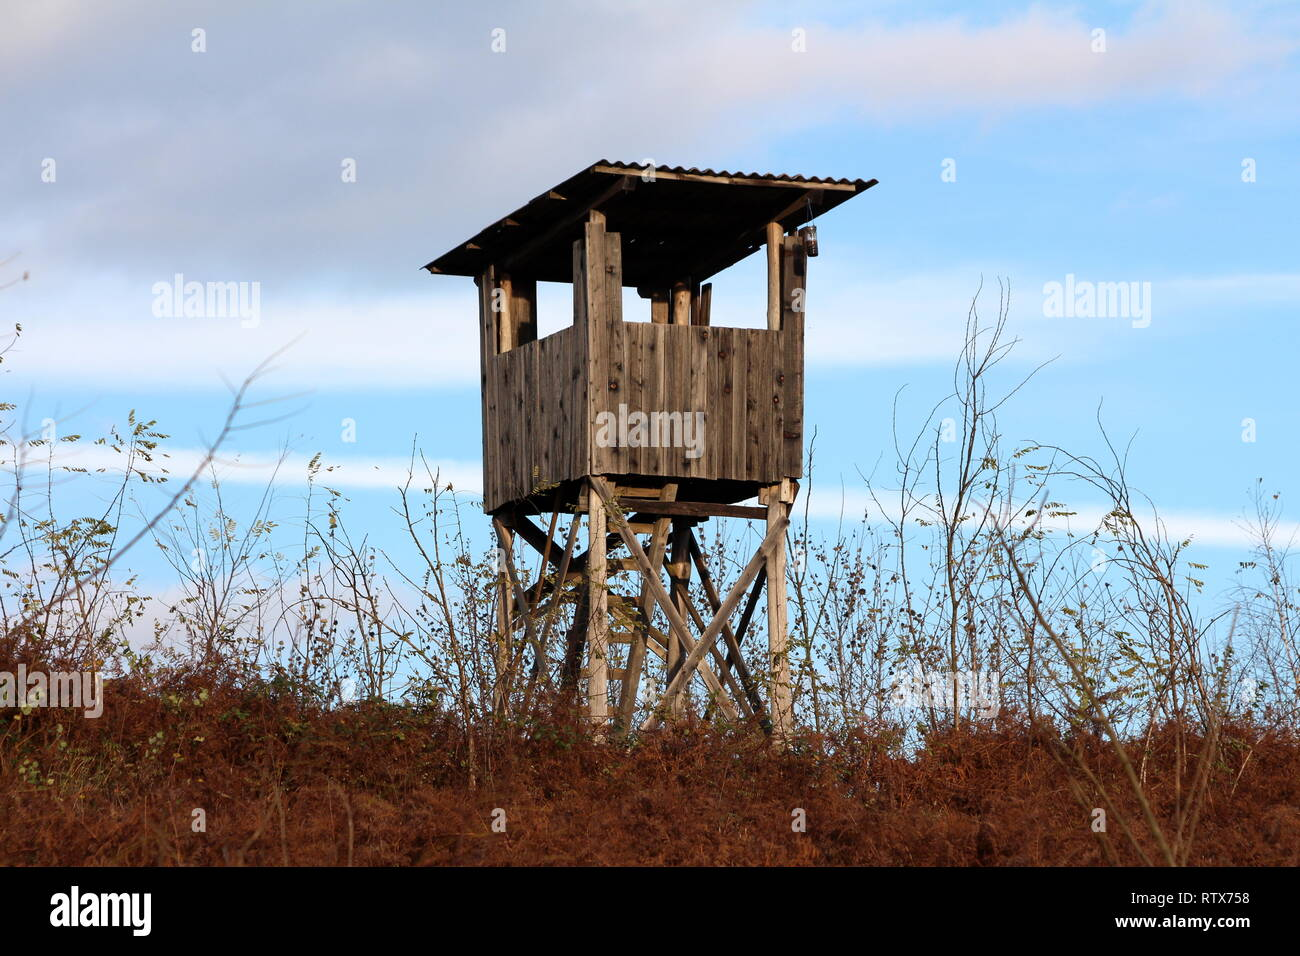 Wooden hunting observation tower with improvised ladders on top of small hill surrounded with high dry grass and dense vegetation on warm sunny day Stock Photo